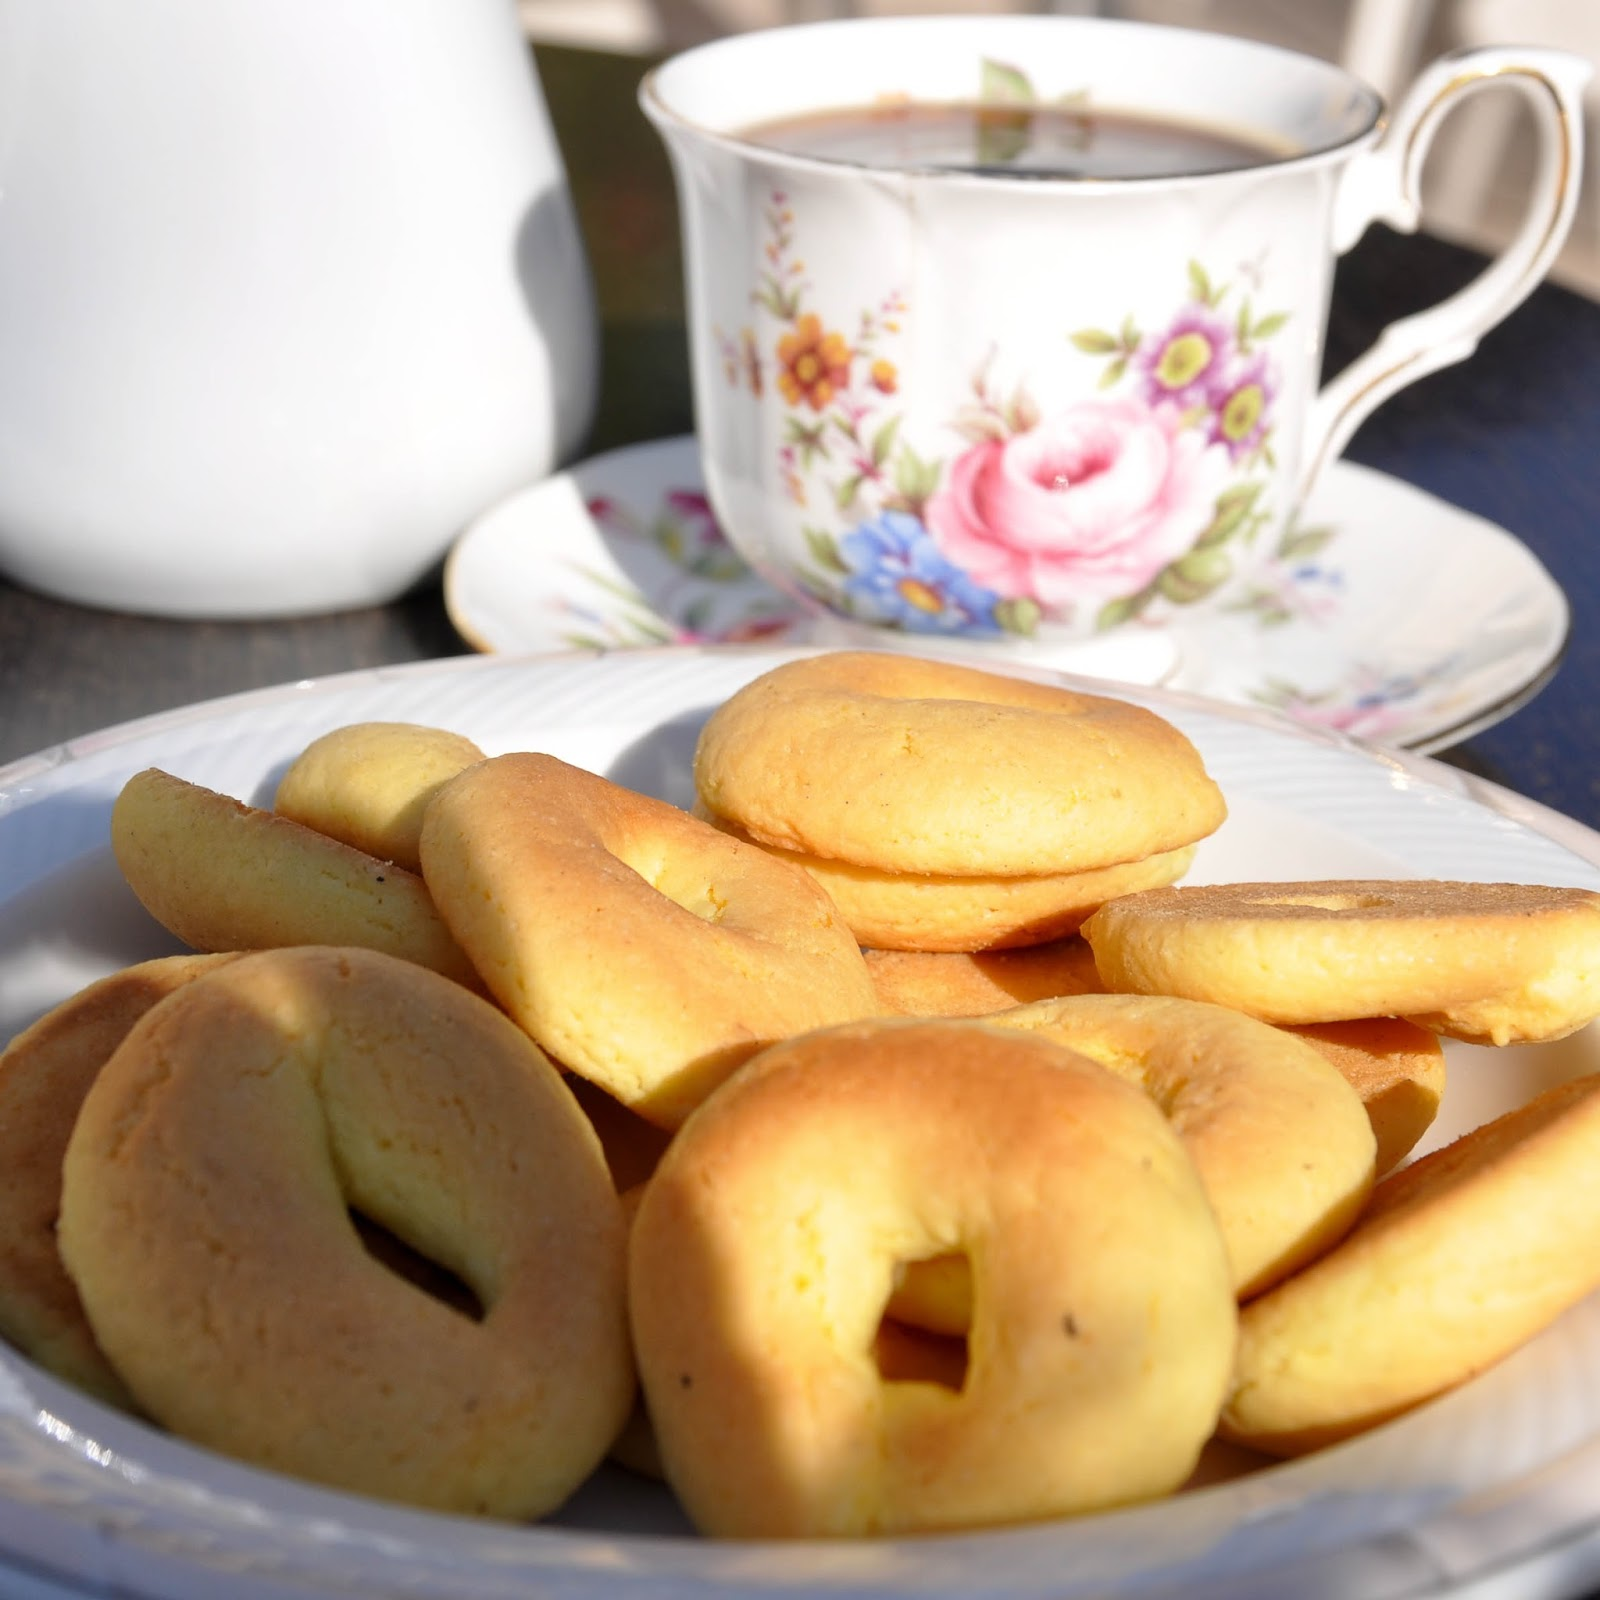 Homemade biscuits served with coffee, Agriturismo La Borina, Veneto, Italy